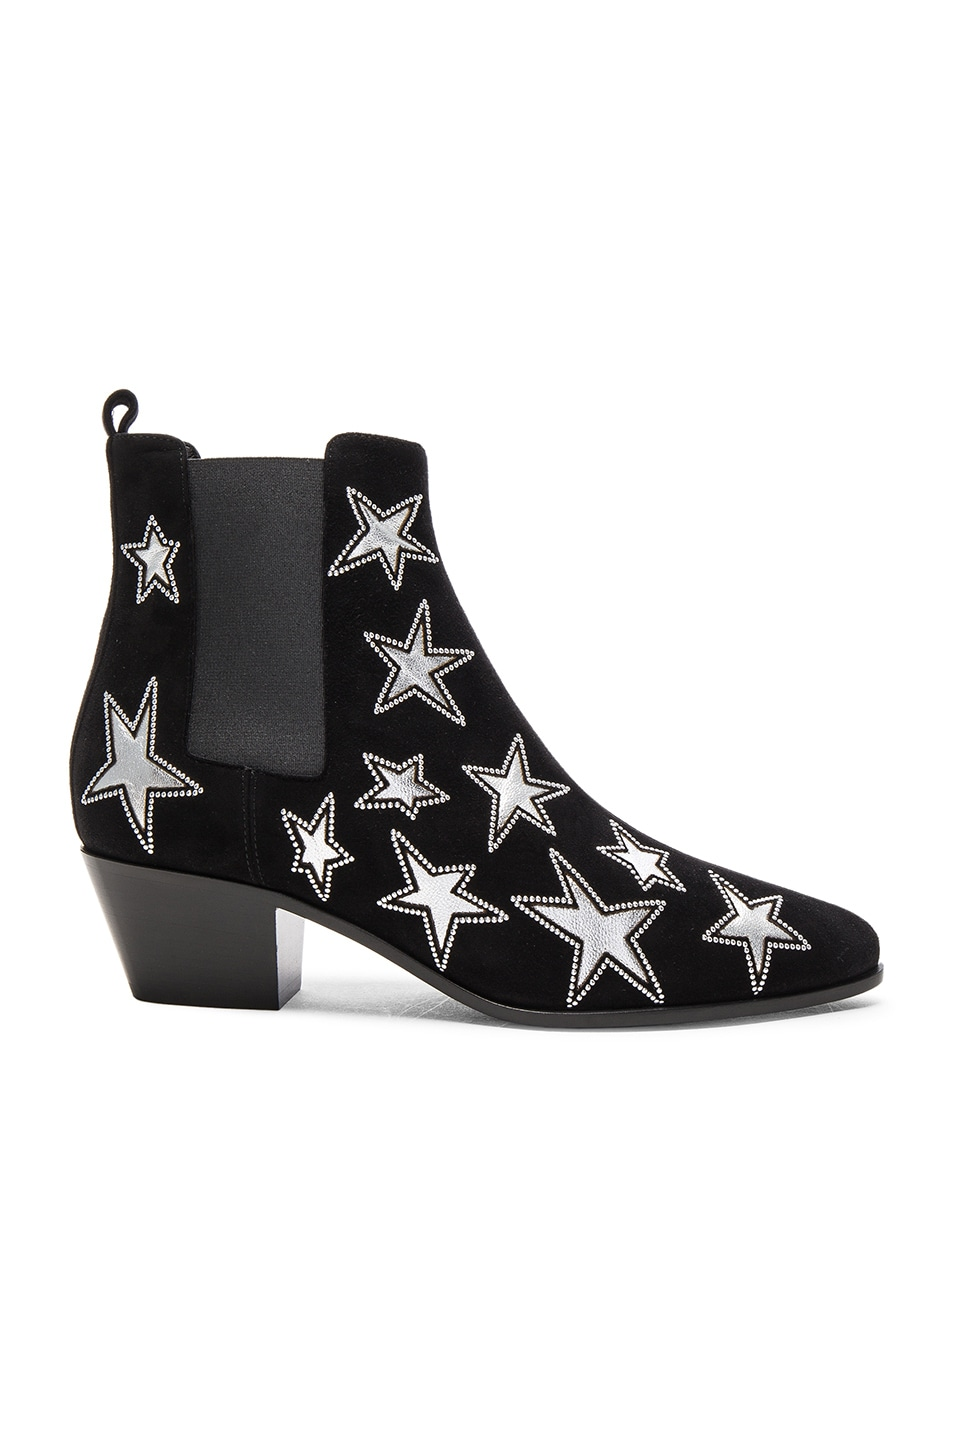 Image 1 of Saint Laurent Rock Suede & Metallic Leather Boots in Black & Palladium